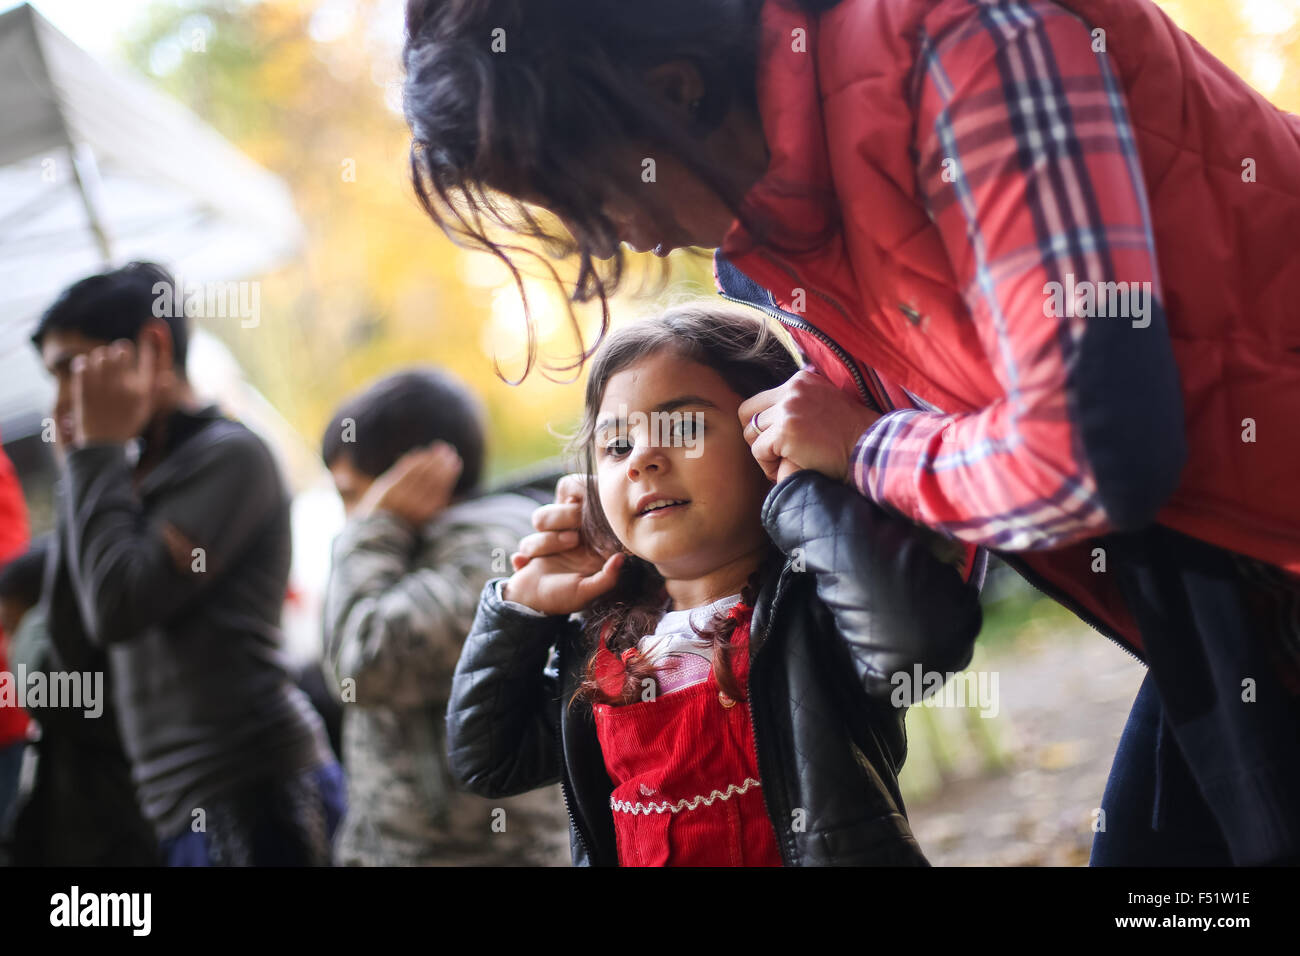 Gelsenkirchen, Germany. 26th Oct, 2015. A girl from Bulgaria playing in Gelsenkirchen, Germany, 26 October 2015. Stock Photo